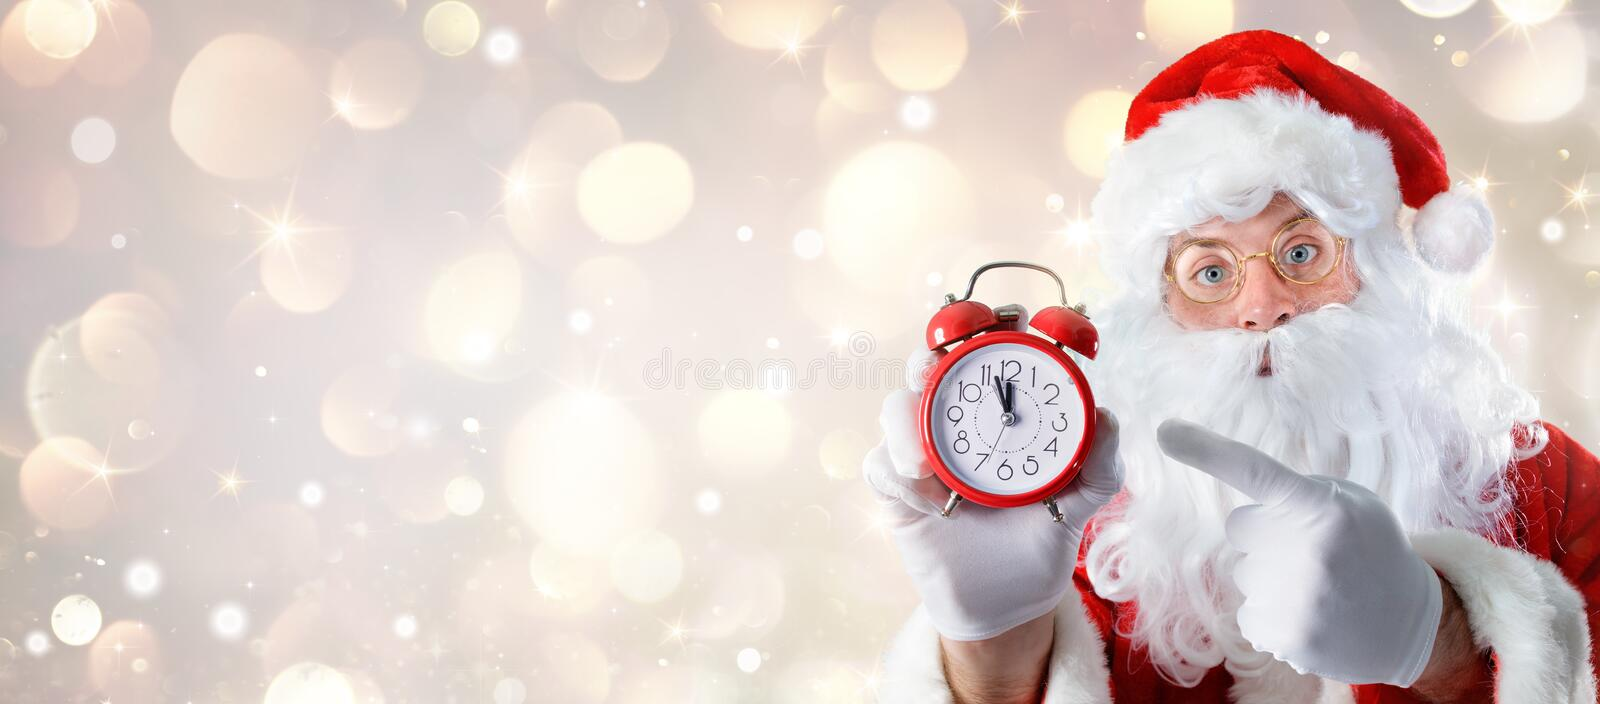 Tempo do Natal - Santa Claus foto de stock royalty free